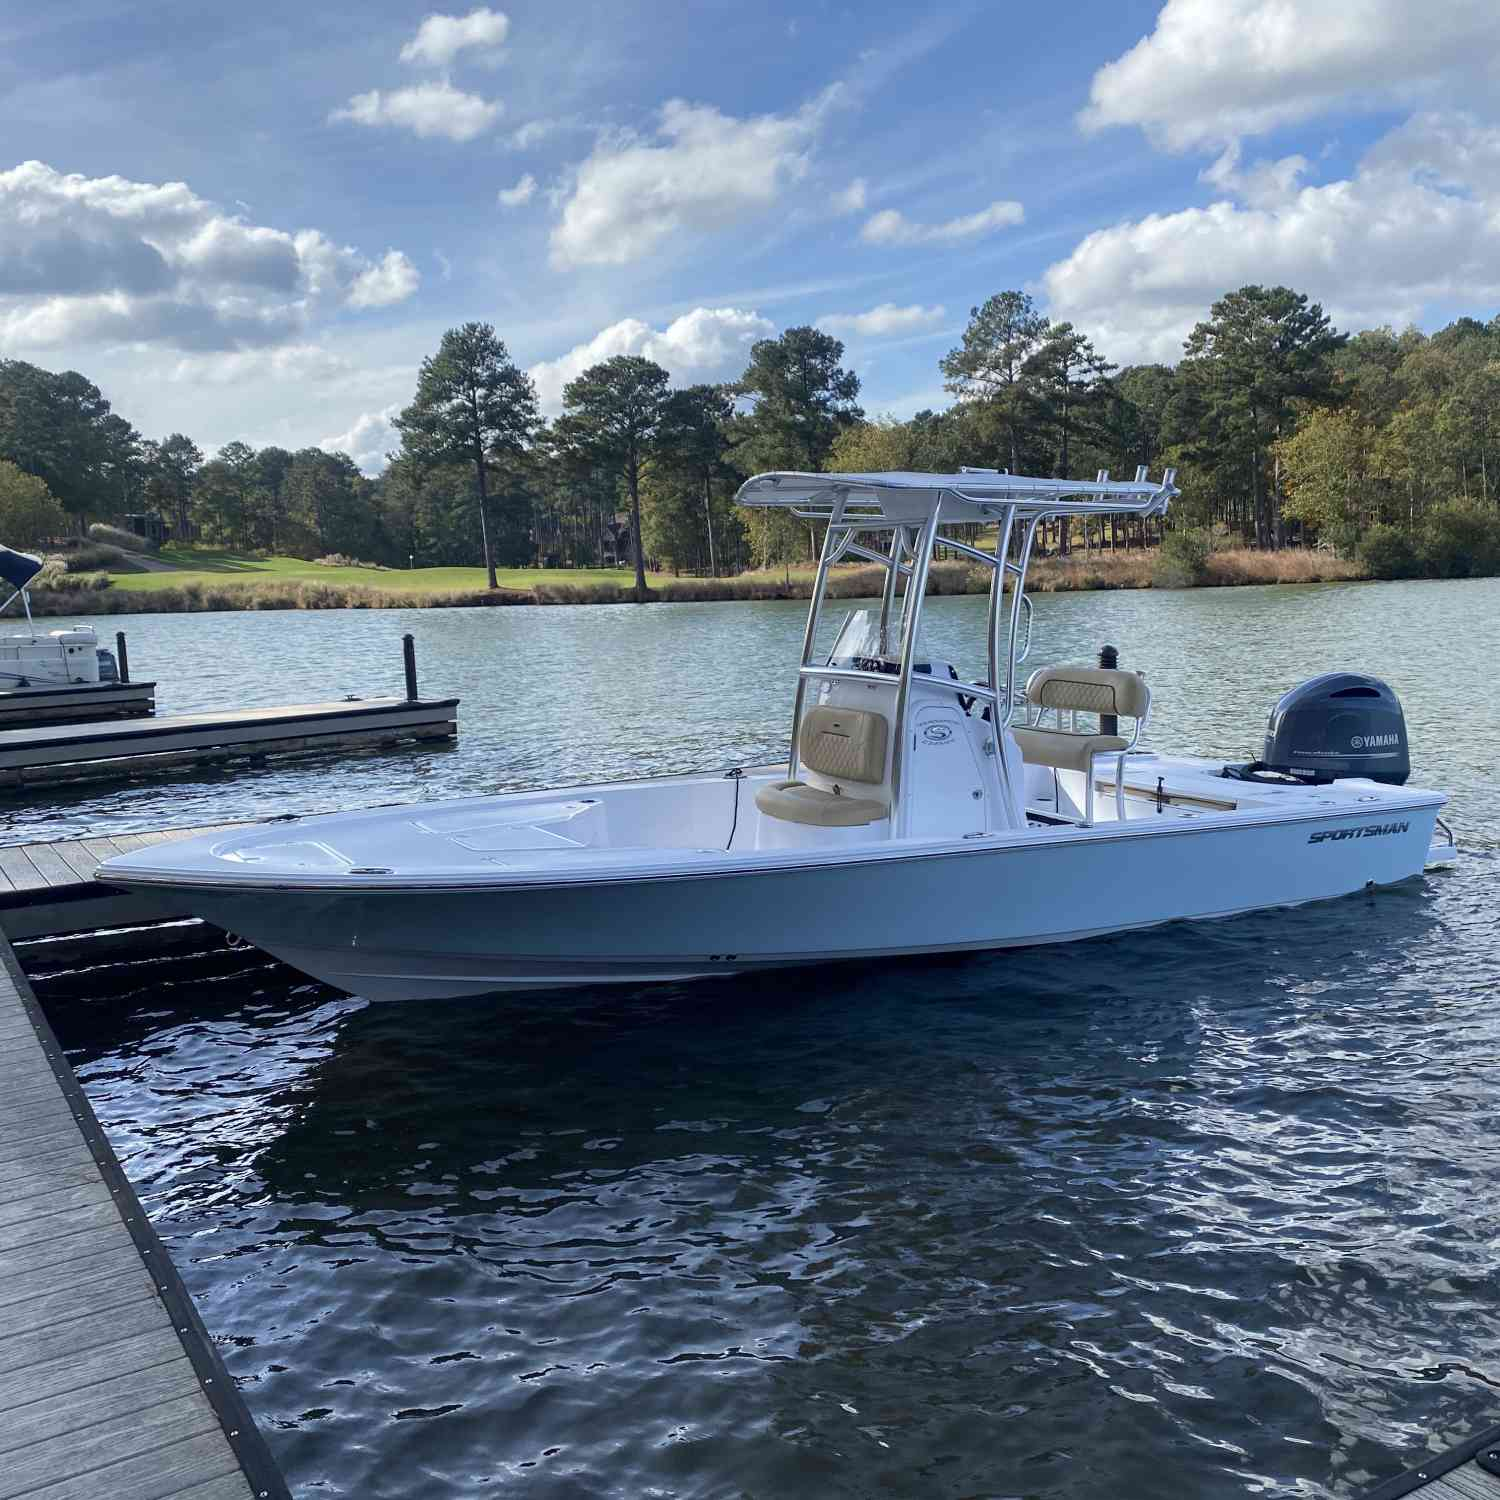 Title: First ride in the new 234 SBX - On board their Sportsman Tournament 234 SBX Bay Boat - Location: Lake Oconee. Participating in the Photo Contest #SportsmanDecember2020